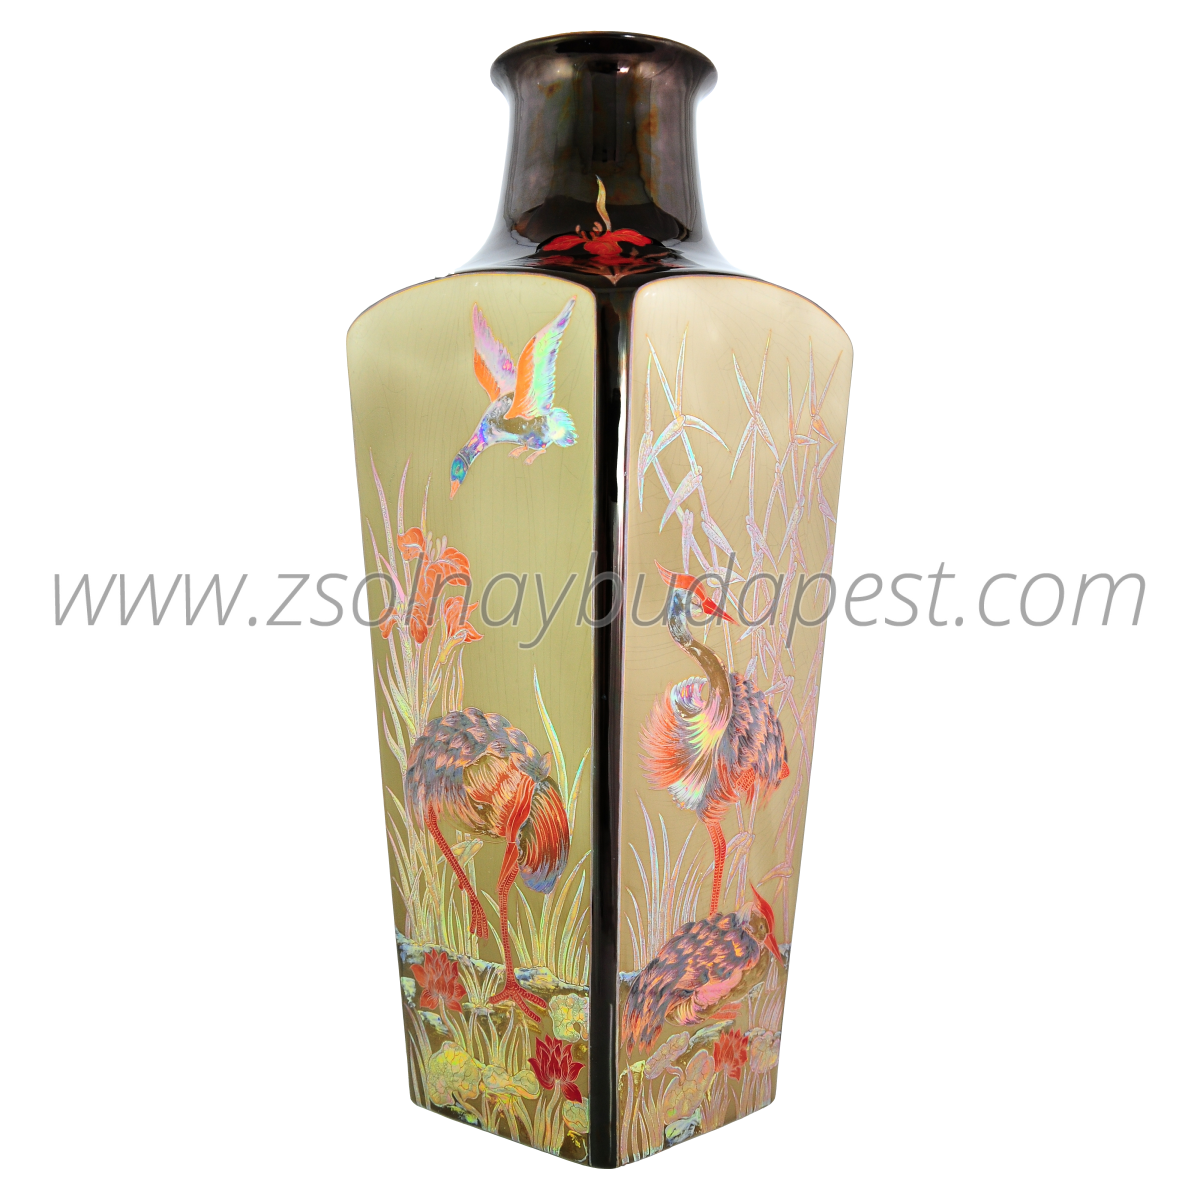 Multi Color Eosin Heron vase Limited edition x/100